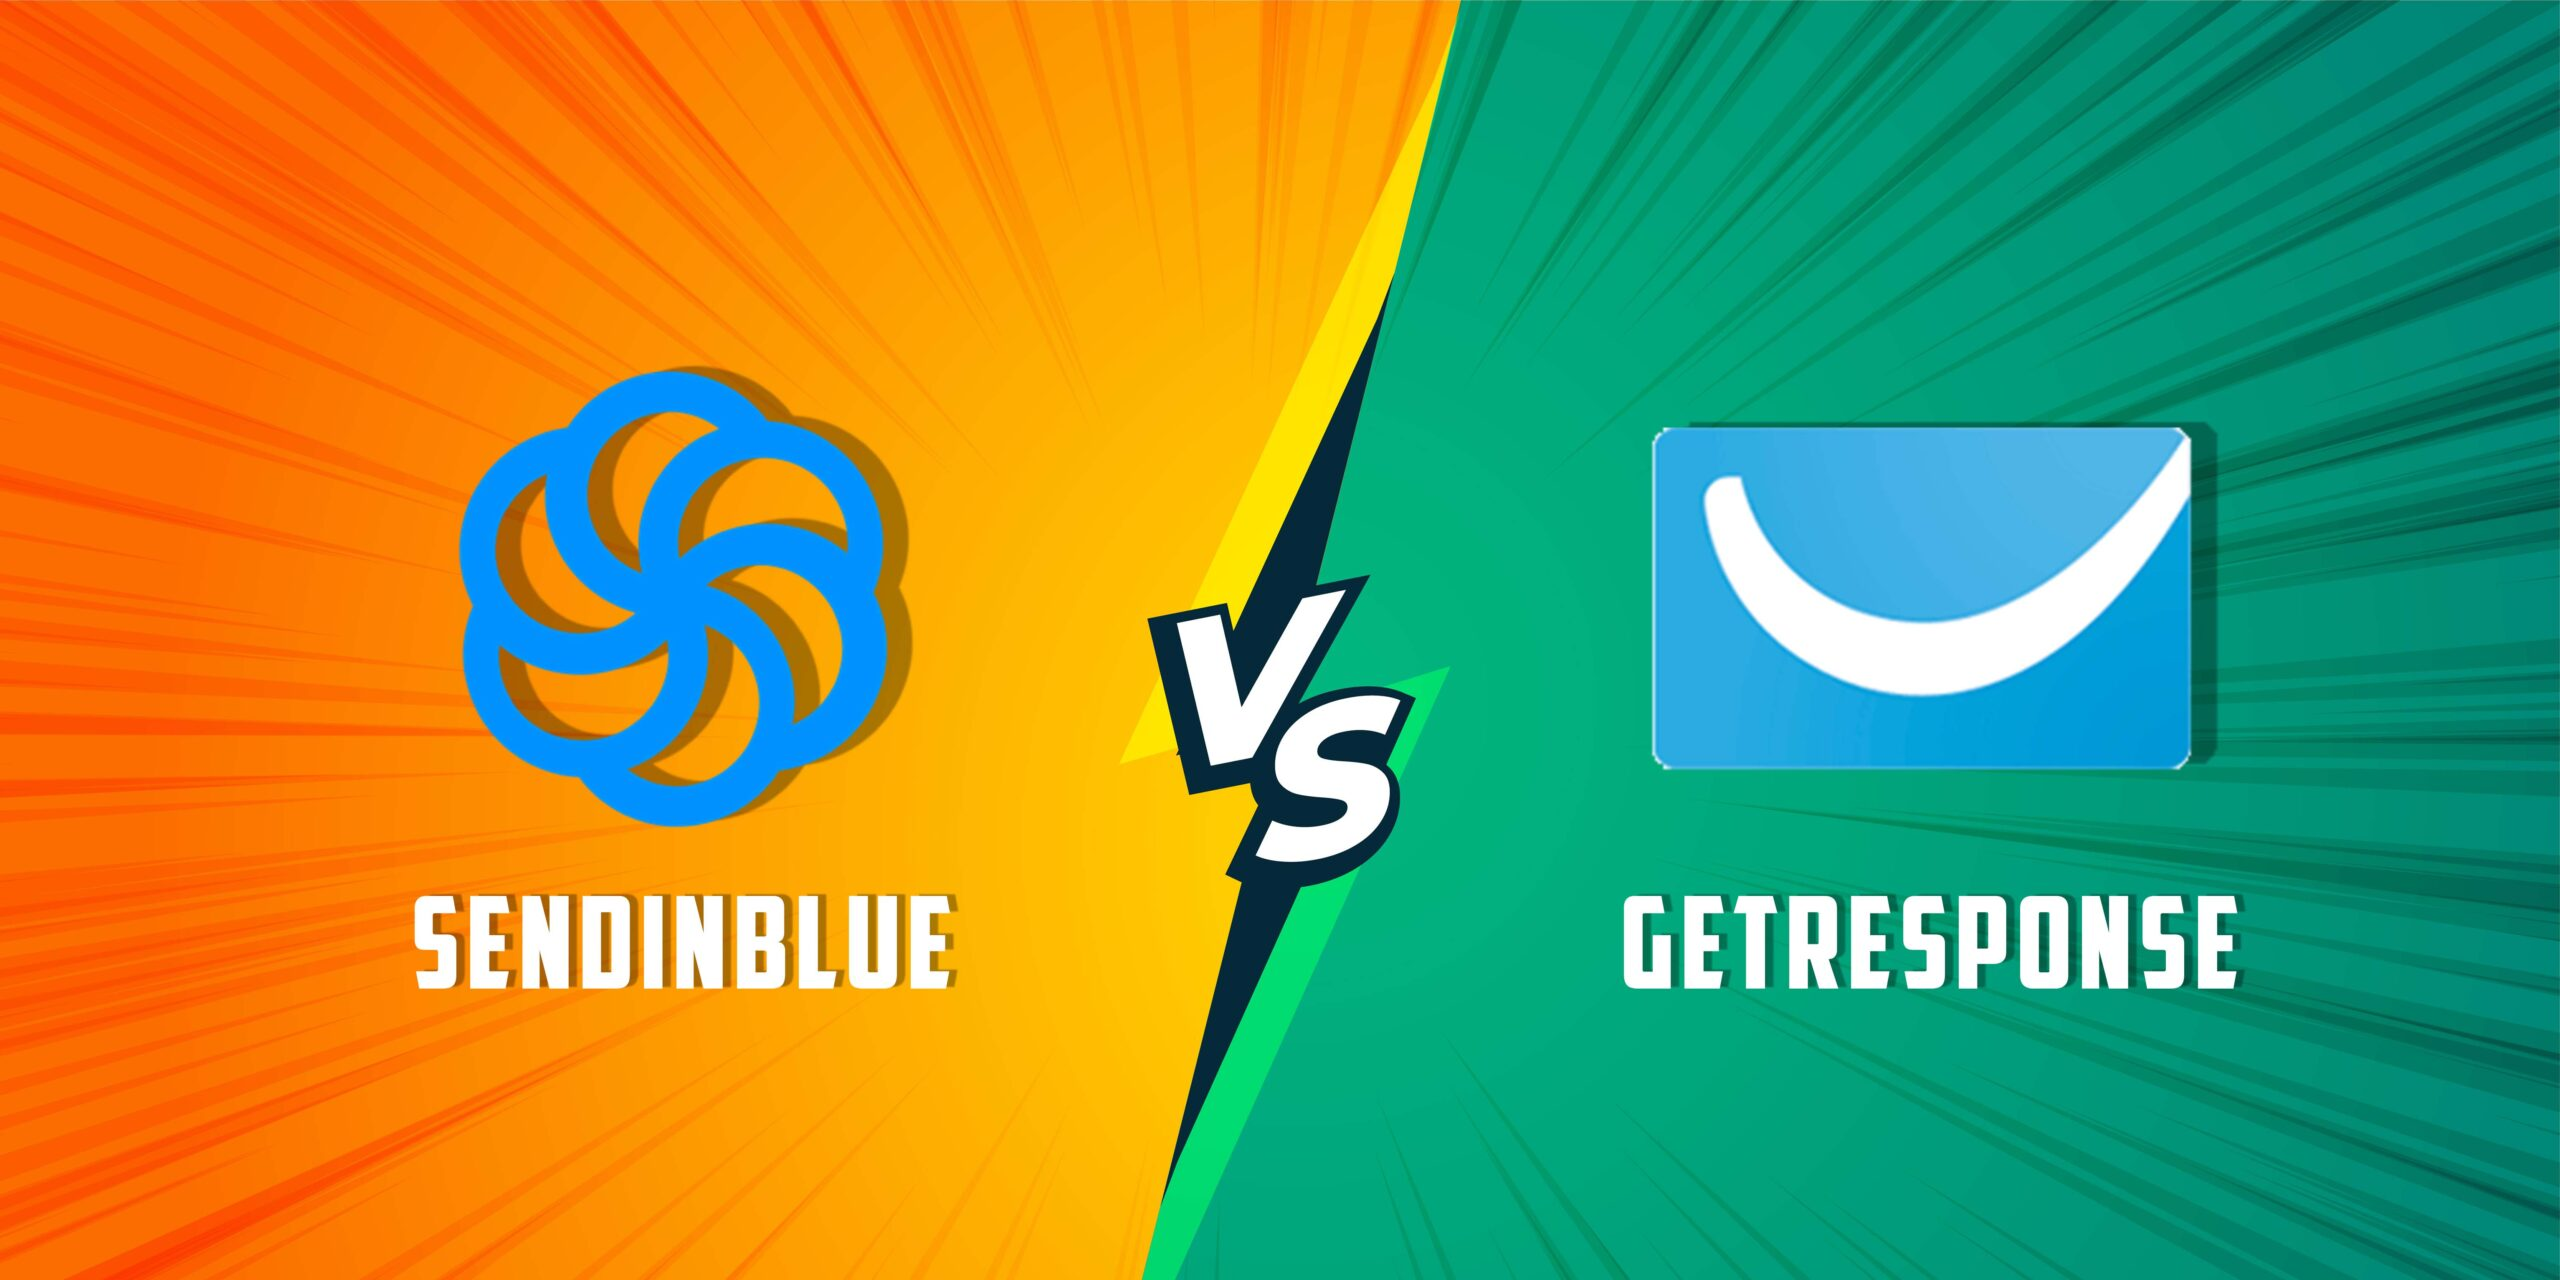 sendinblue review - SendinBlue VS GetResponse